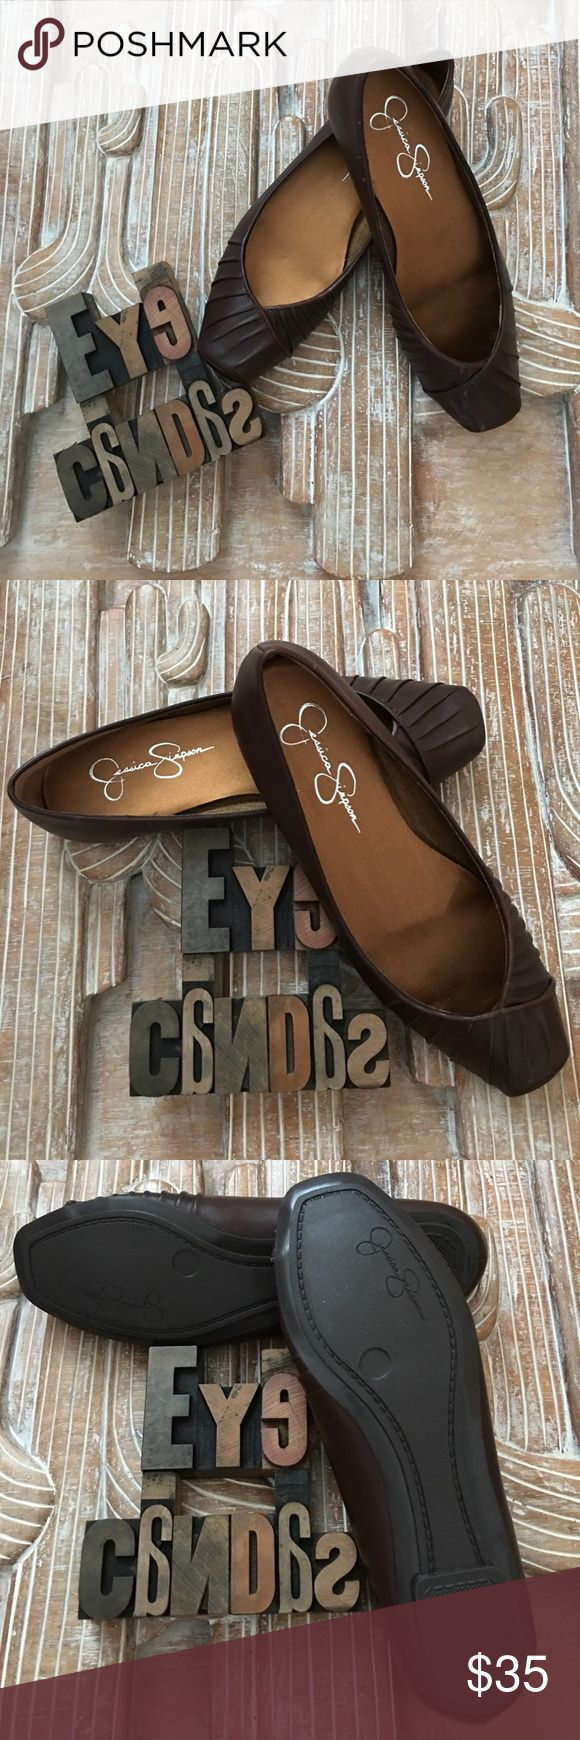 Jessica Simpson 'Emmly' Ballet Flats New Without Tags. The tiny dancer who can fit into these size 5 1/2 square toe chocolate brown ballet flats will rule that dance floor! Pet free/smoke free home. Jessica Simpson Shoes Flats & Loafers